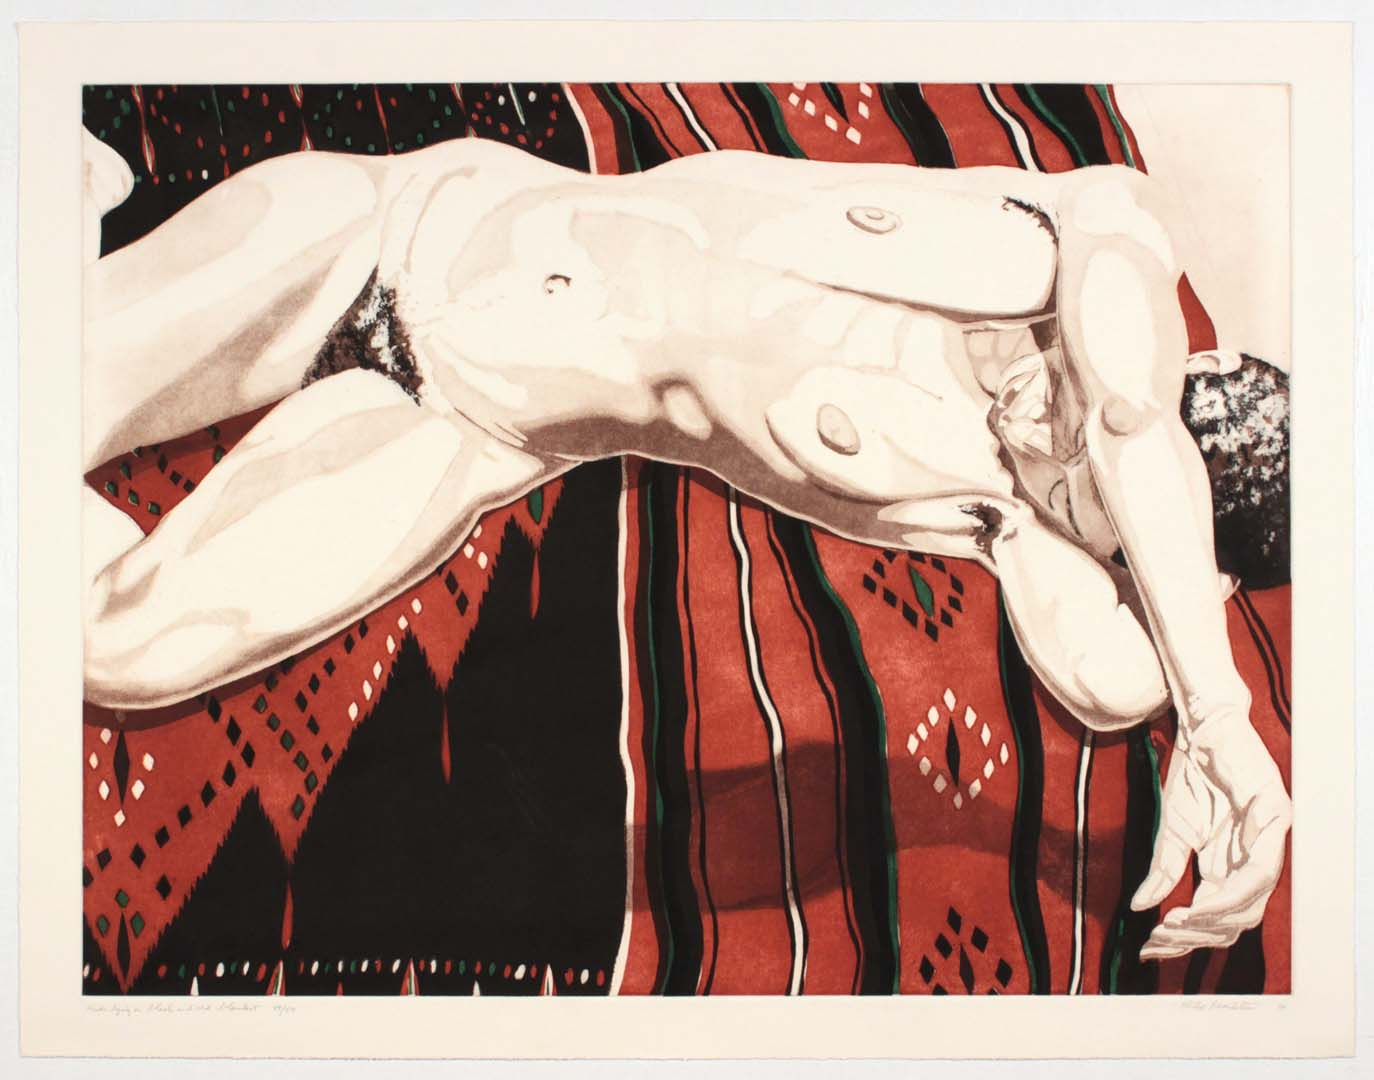 1974 Nude Lying on Black and Red Blanket Aquatint Etching on Paper 22.75 x 29.25